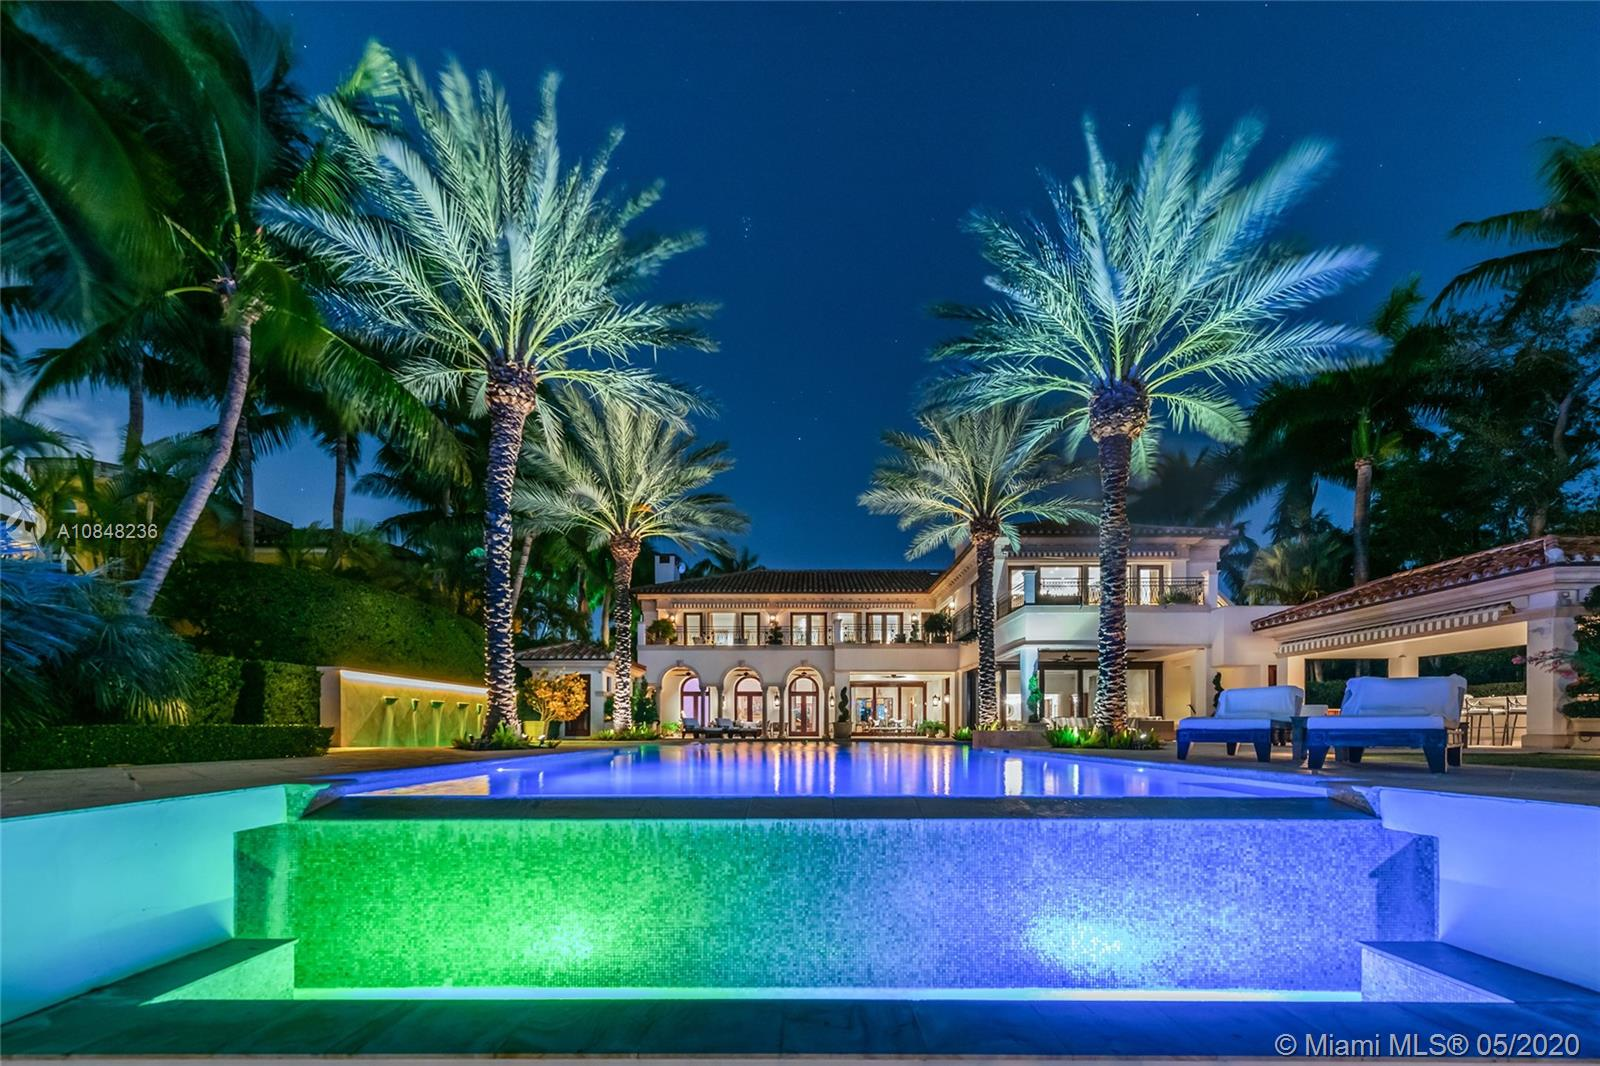 This amazing contemporary 2-Story waterfront estate on exclusive, guard-gated Star Island exemplifies luxury living. The estate sits on a manicured 40,000 SF lot & offers 15,011 SF & 100FT of WF w/direct Biscayne Bay & Miami skyline sunset views. Home features exquisite stone floors, Venetian plaster walls, elevator & living room that opens to the private formal dining room, an industrial-style chef's kitchen, library/den, wine room & great room that opens to the pool area. The 2nd floor principal suite sports a sitting room, office & 2 large terraces w/bay views, plus a bathroom w/expansive onyx/glass steam shower, large walk-in closet & custom spa tub. Outdoor highlights include: pool w/Jacuzzi, cabana bath, covered bar, private 100FT IPE wood dock & Atlantic Ocean access.